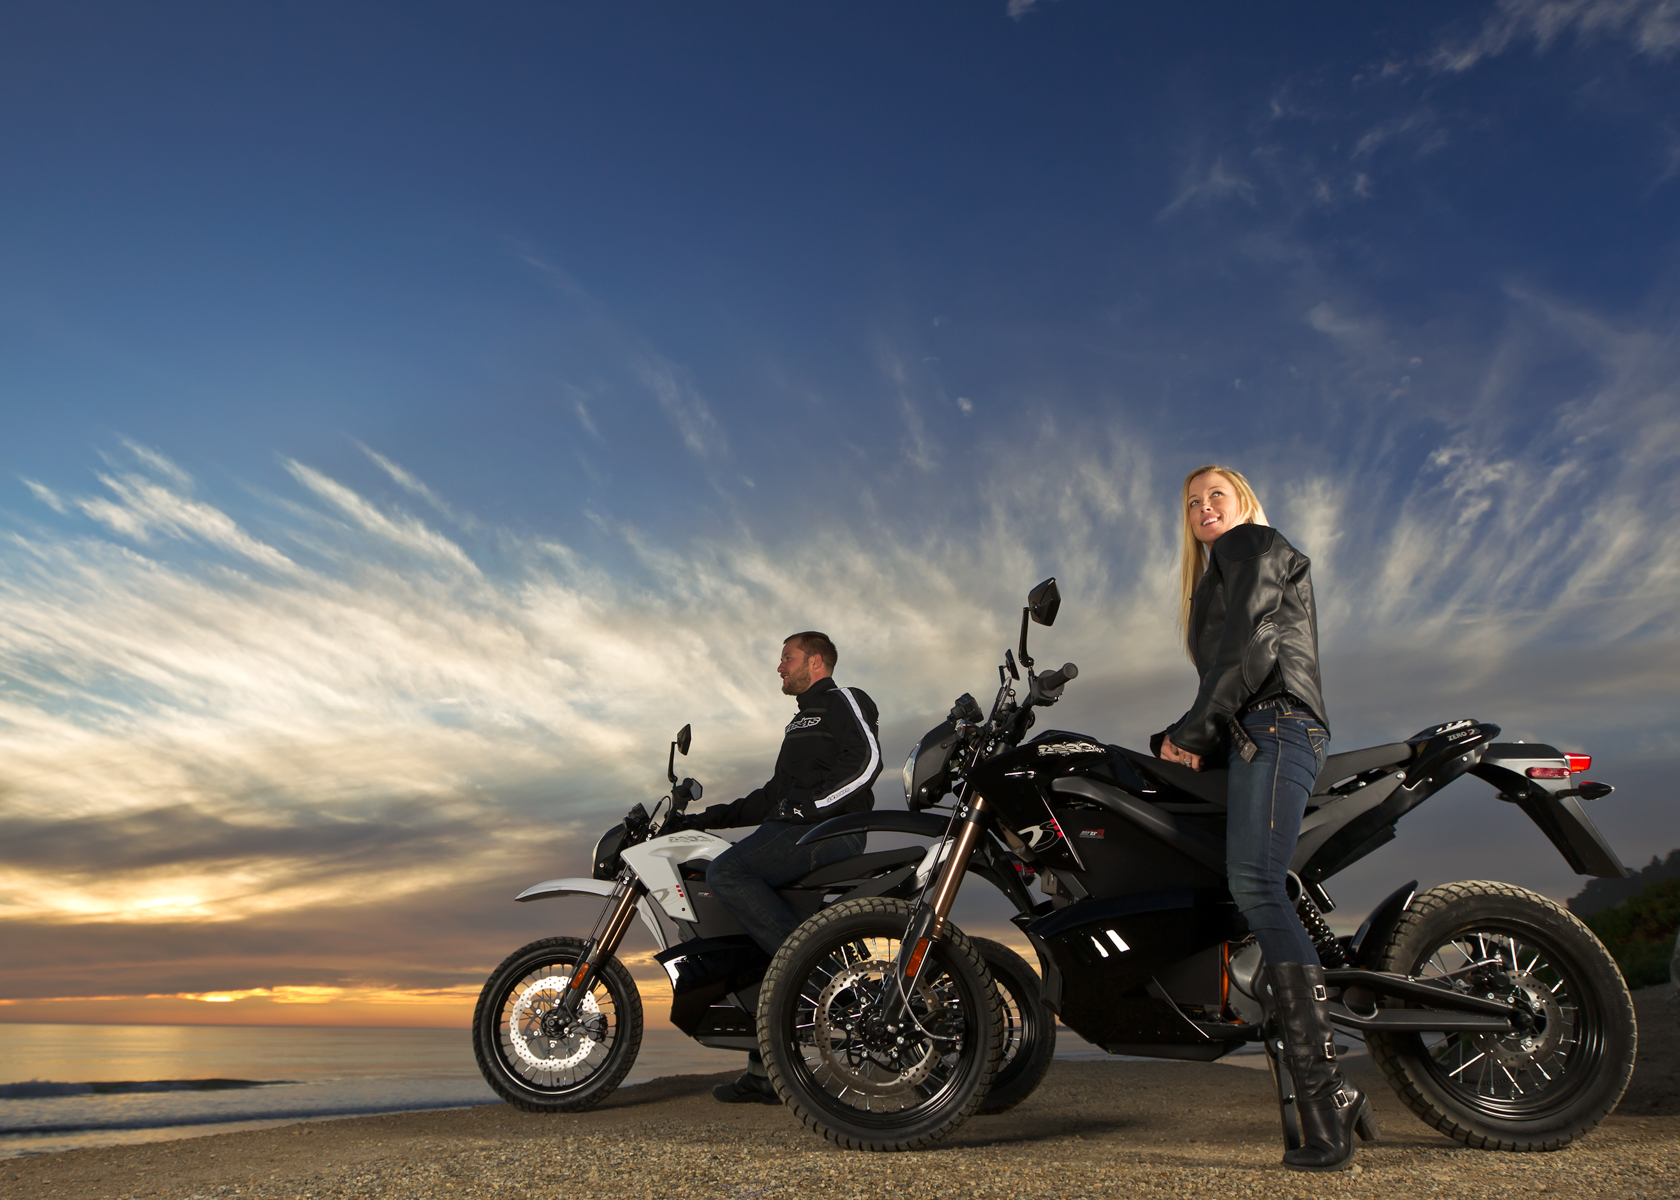 2012 Zero DS Electric Motorcycle: Ocean at Sunset